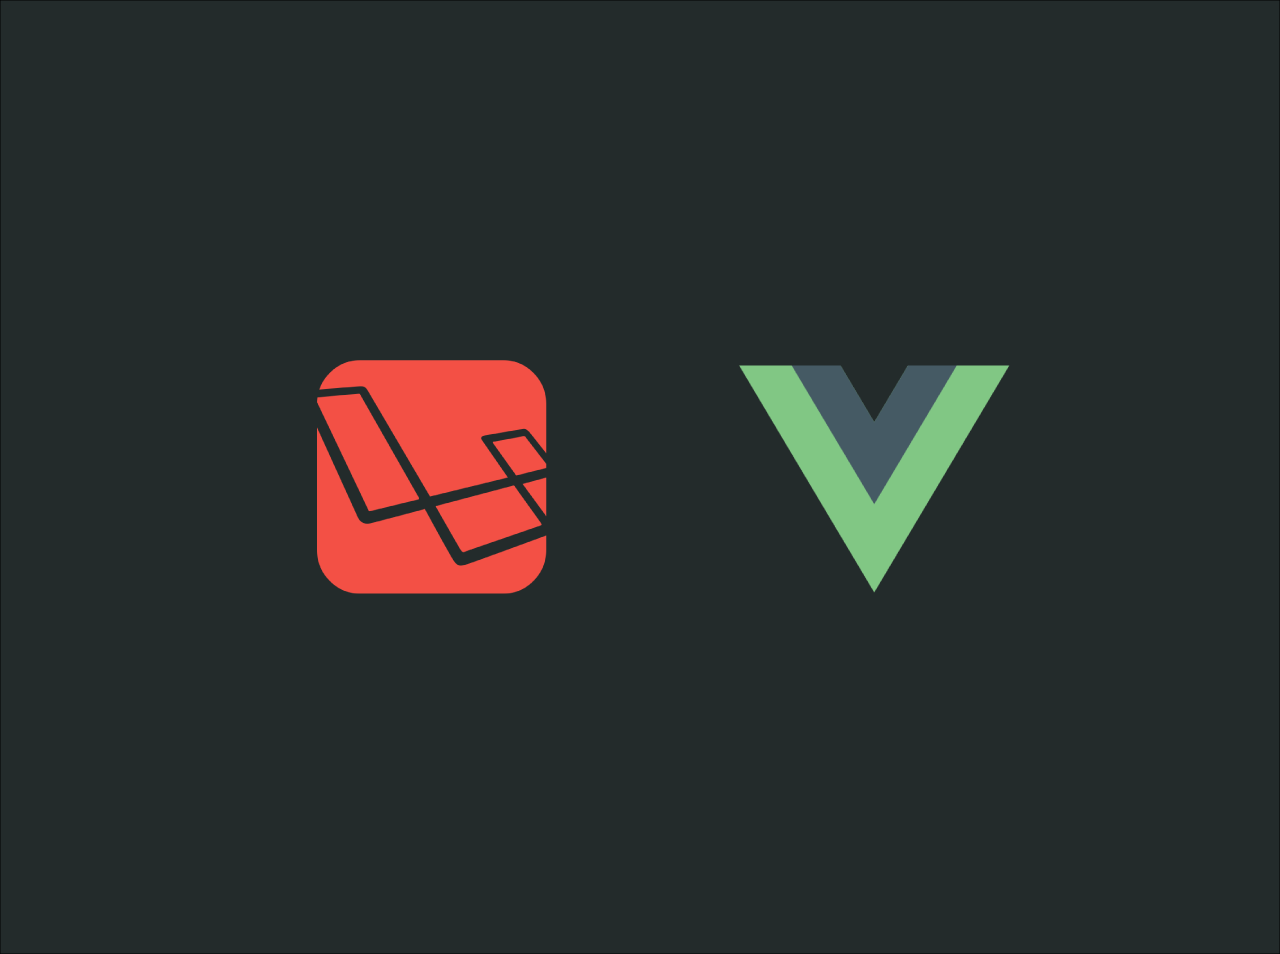 Build Laravel Vuejs like dislike system